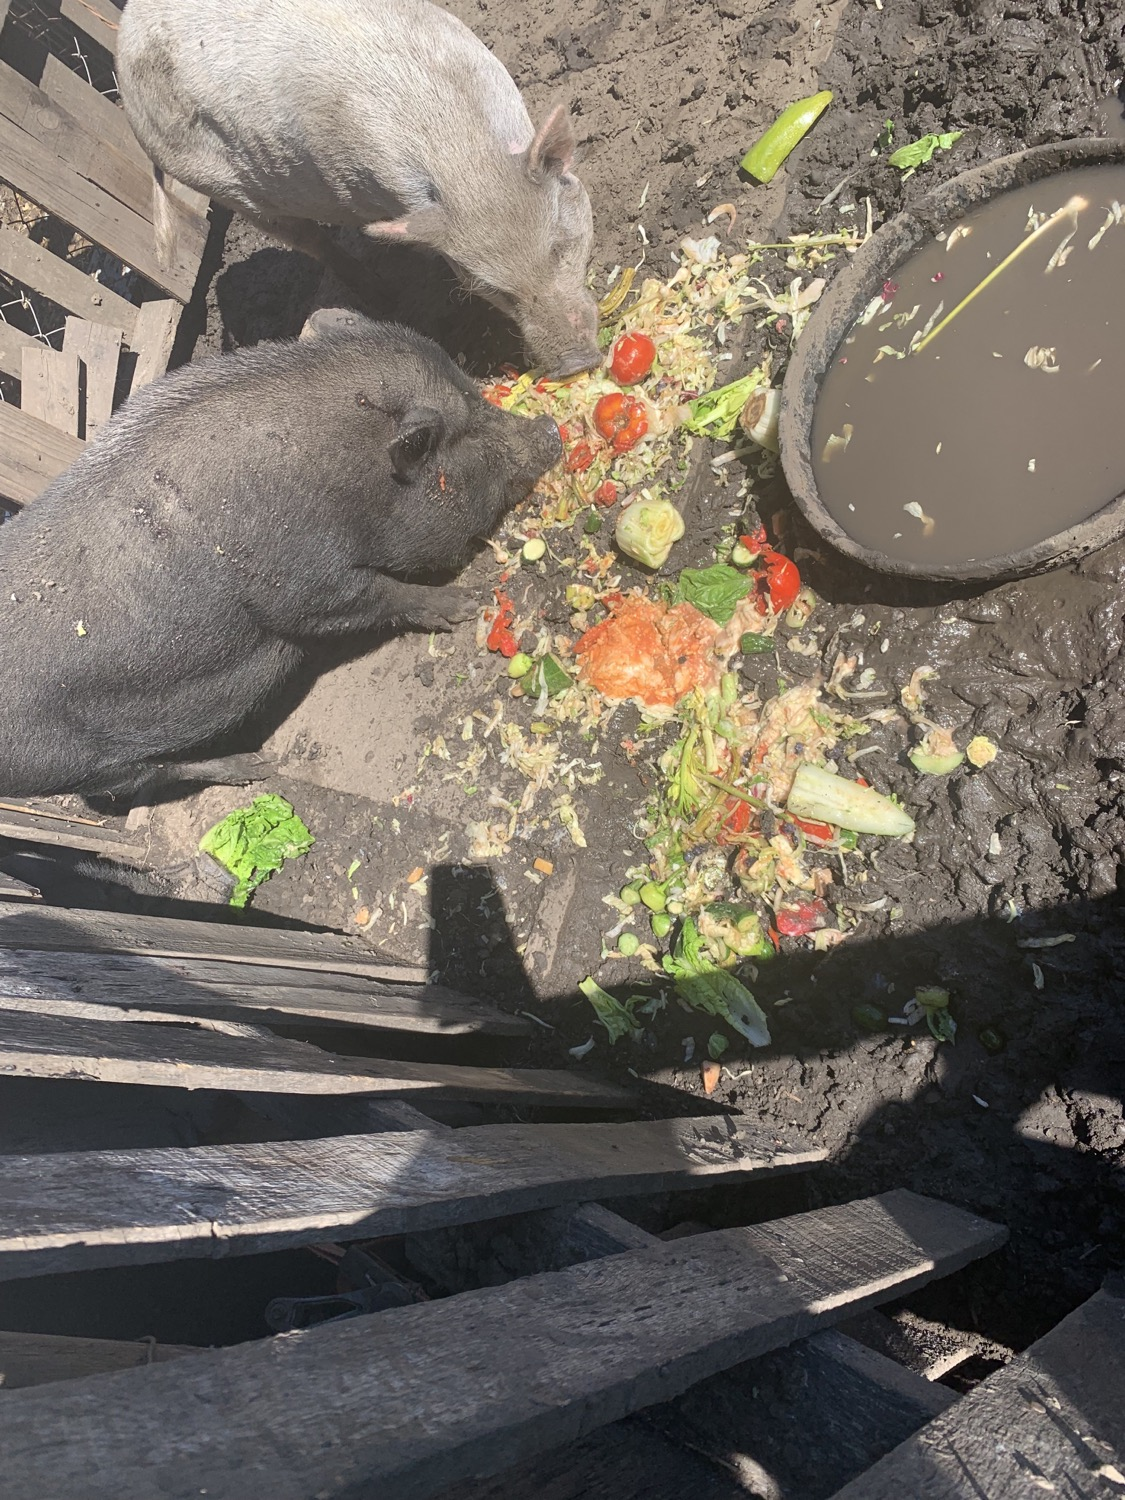 Chow Time